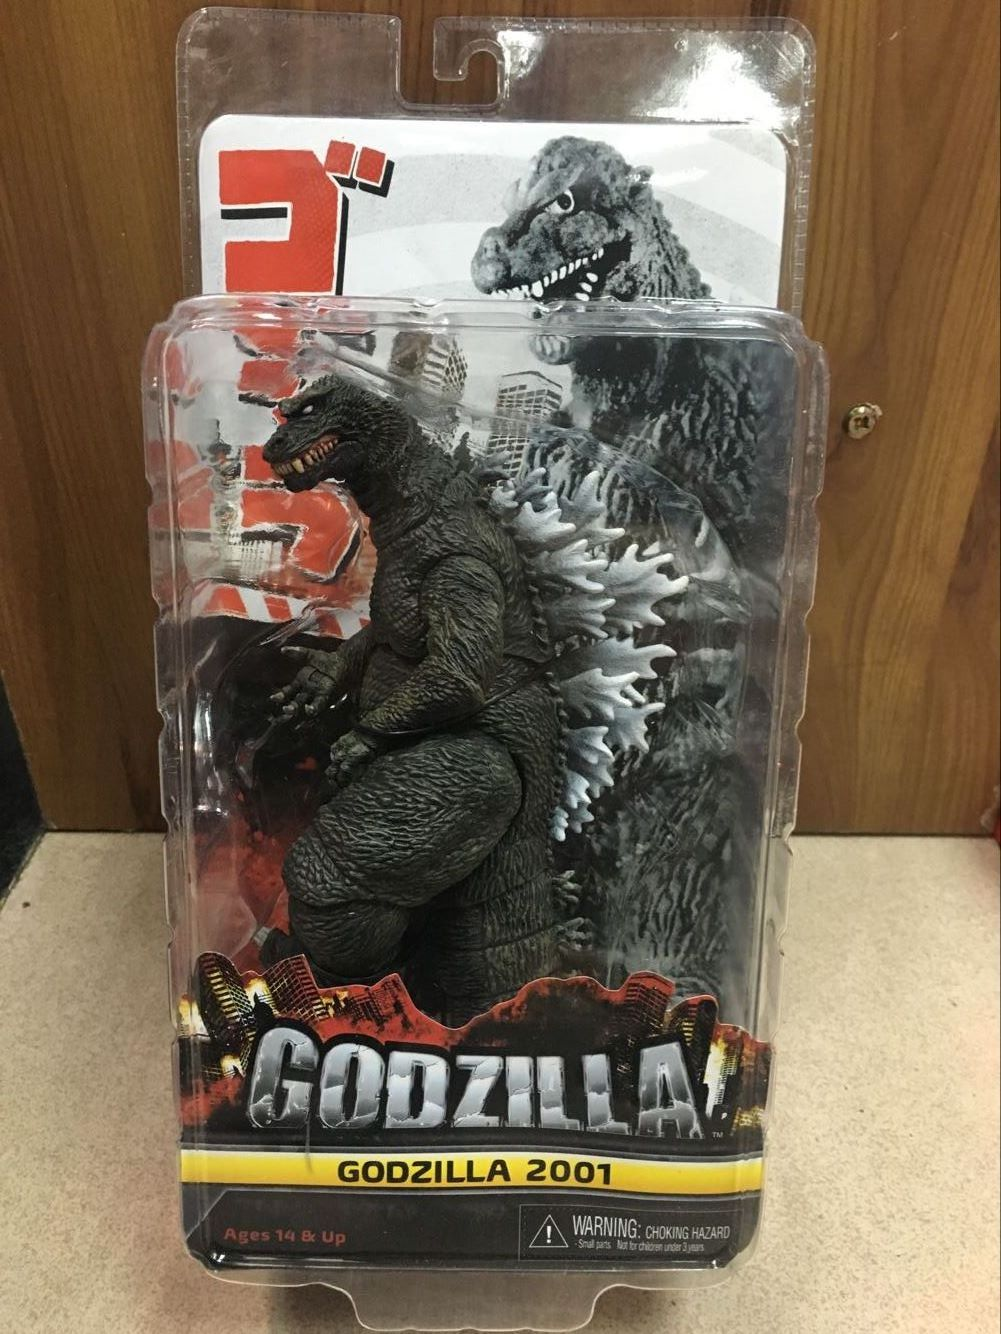 Free Shipping NECA Godzilla 2001 1954 PVC Action Figure Collectible Model Toy 8 20CM Classic Toy KT3378 free shipping neca official 1979 movie classic original alien pvc action figure collectible toy doll 7 18cm mvfg035